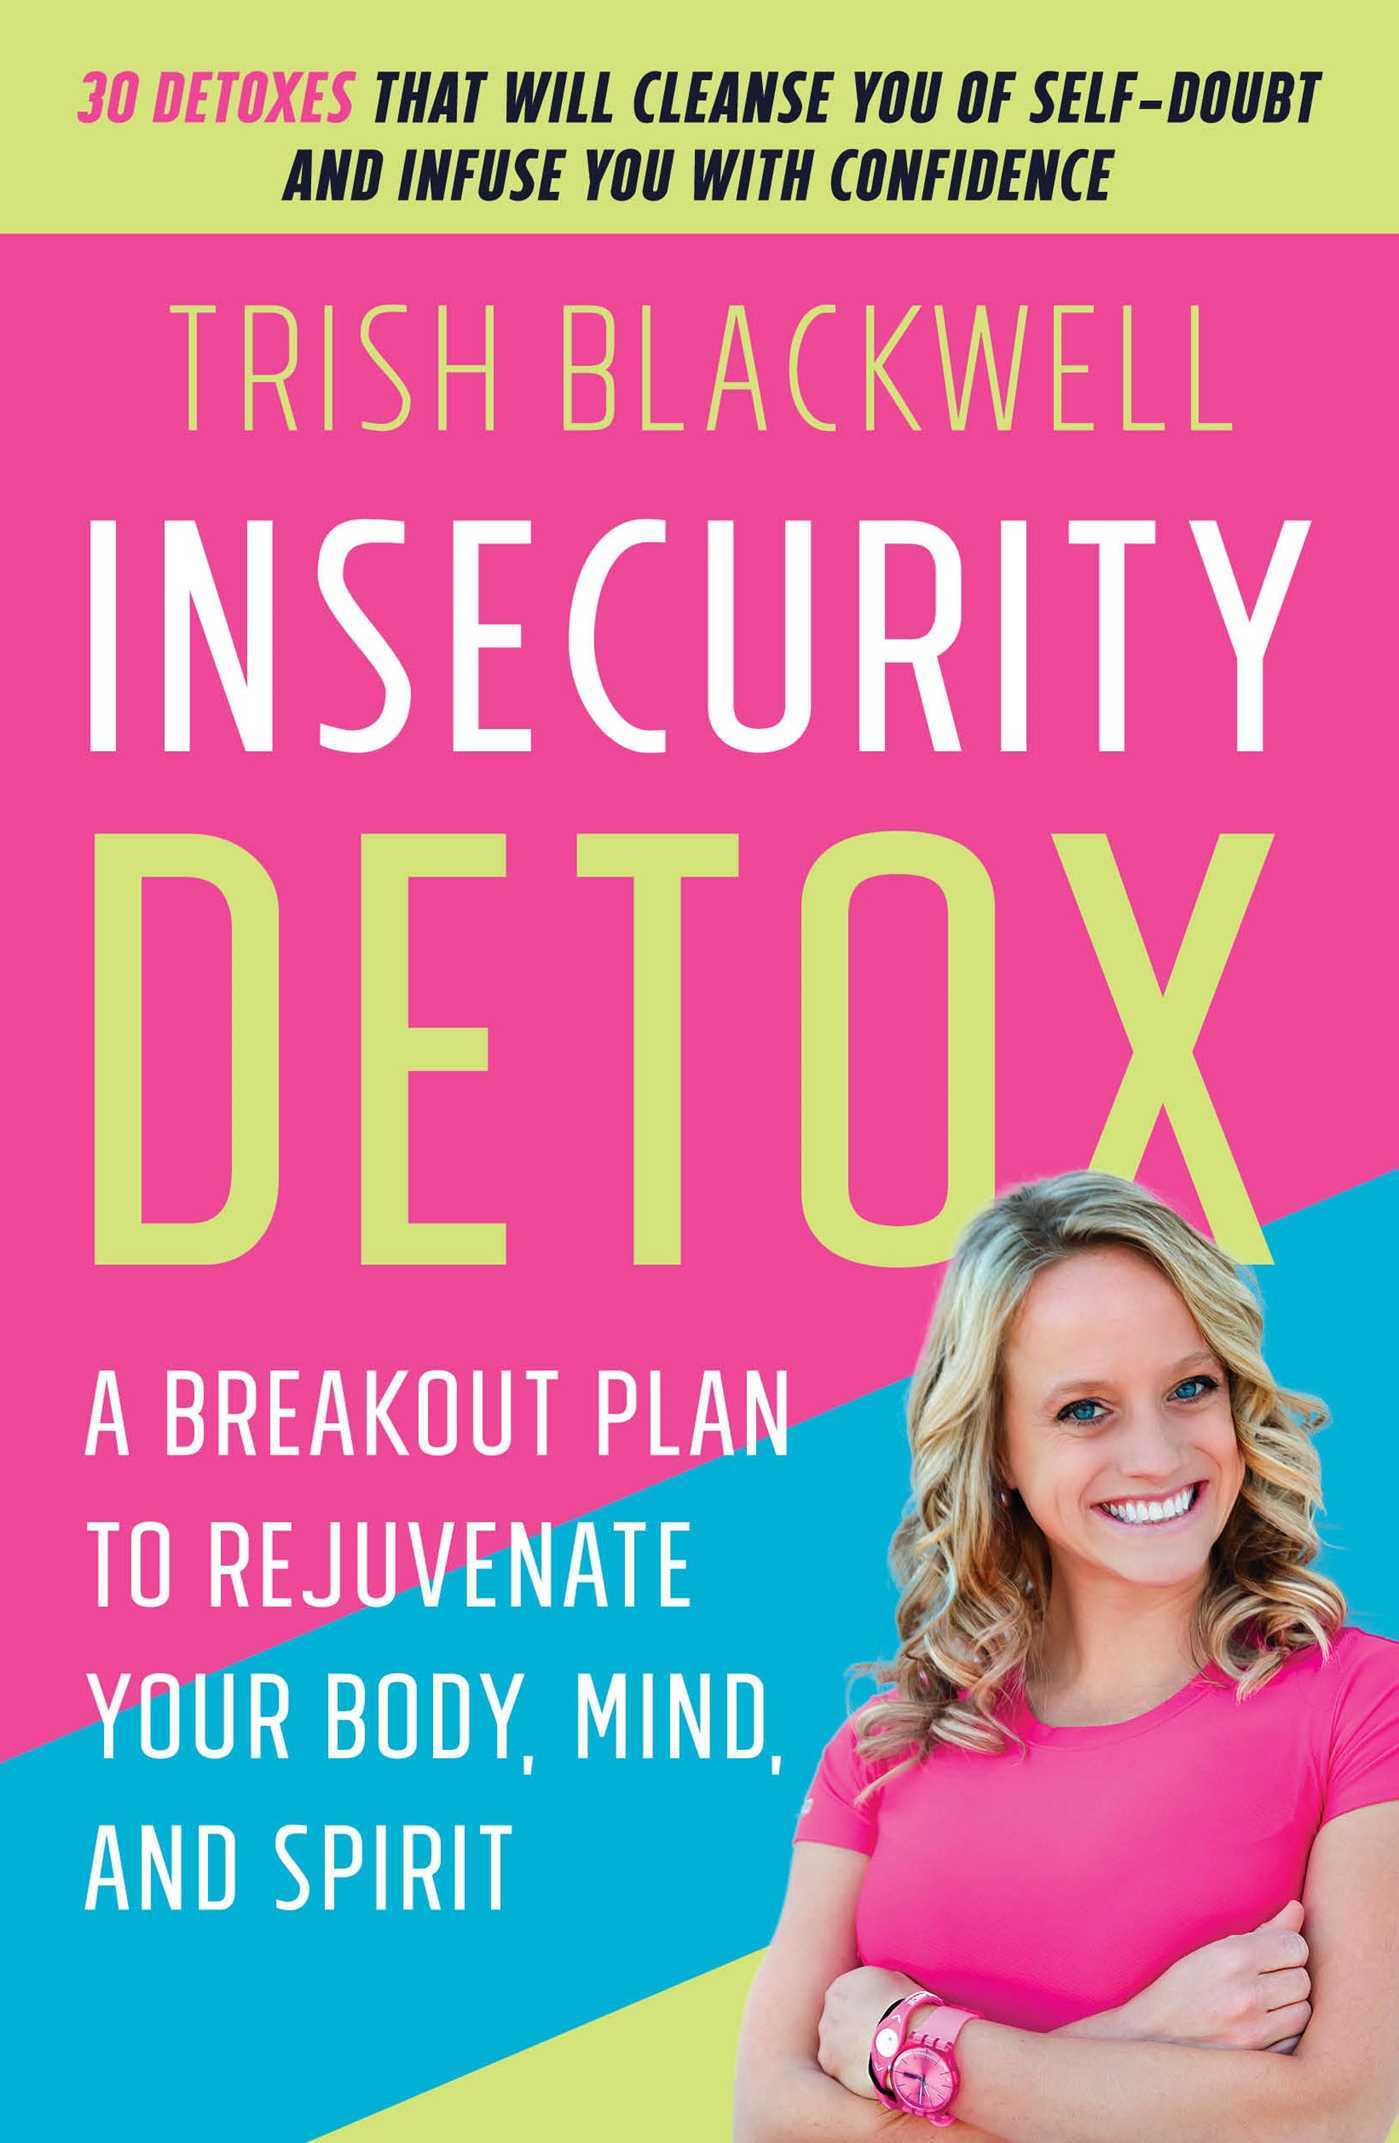 Insecurity Detox: A Breakout Plan to Rejuvenate Your Body, Mind, and Spirit Trish Blackwell